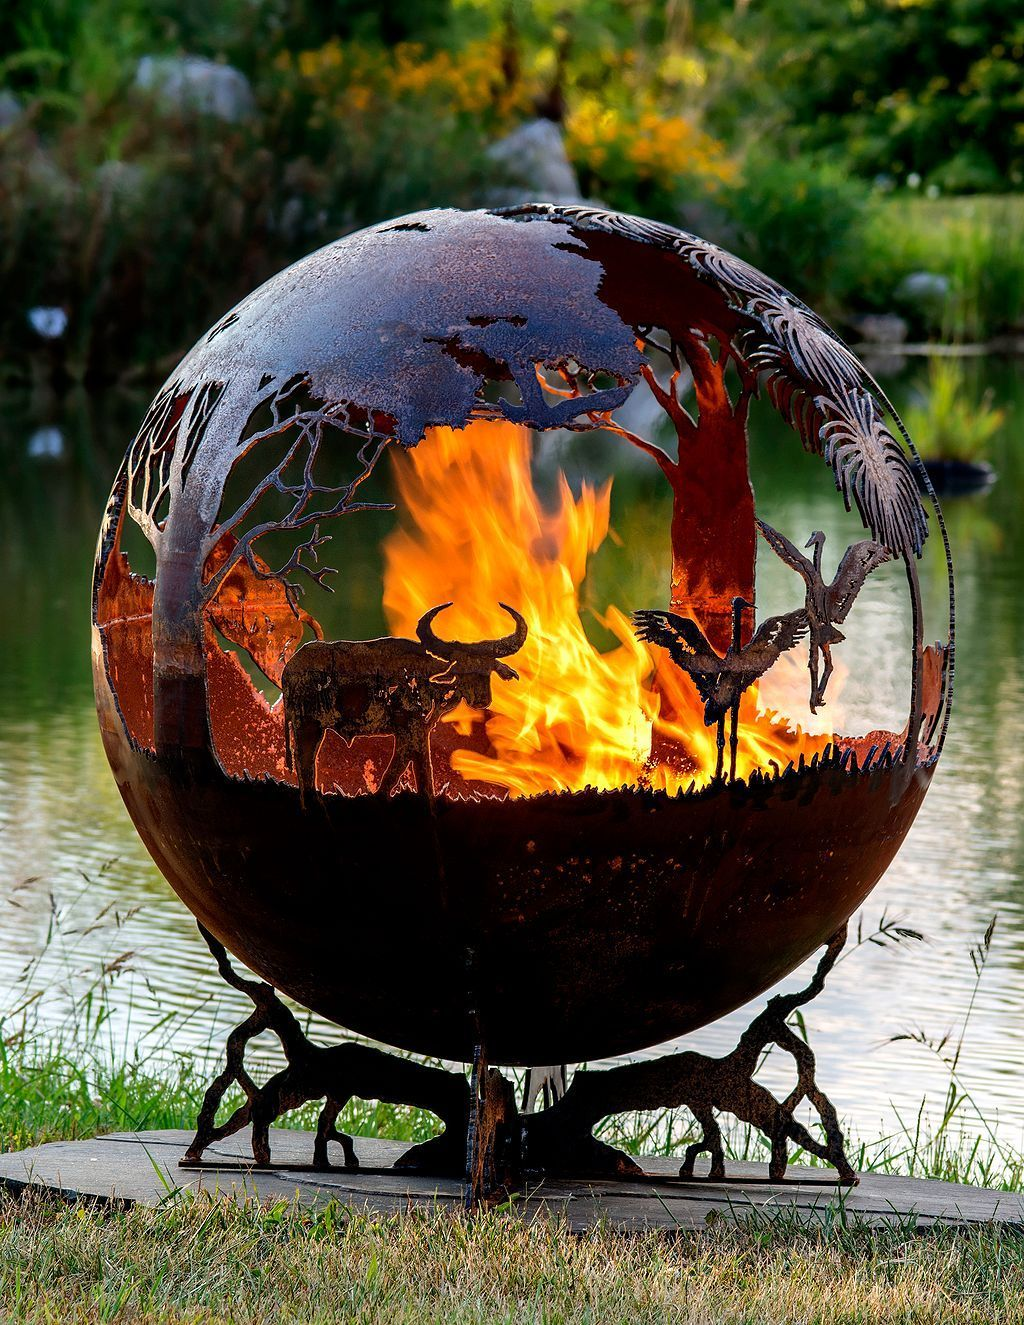 Amazing Outdoor Fire Pits Inspiration 42 Interior